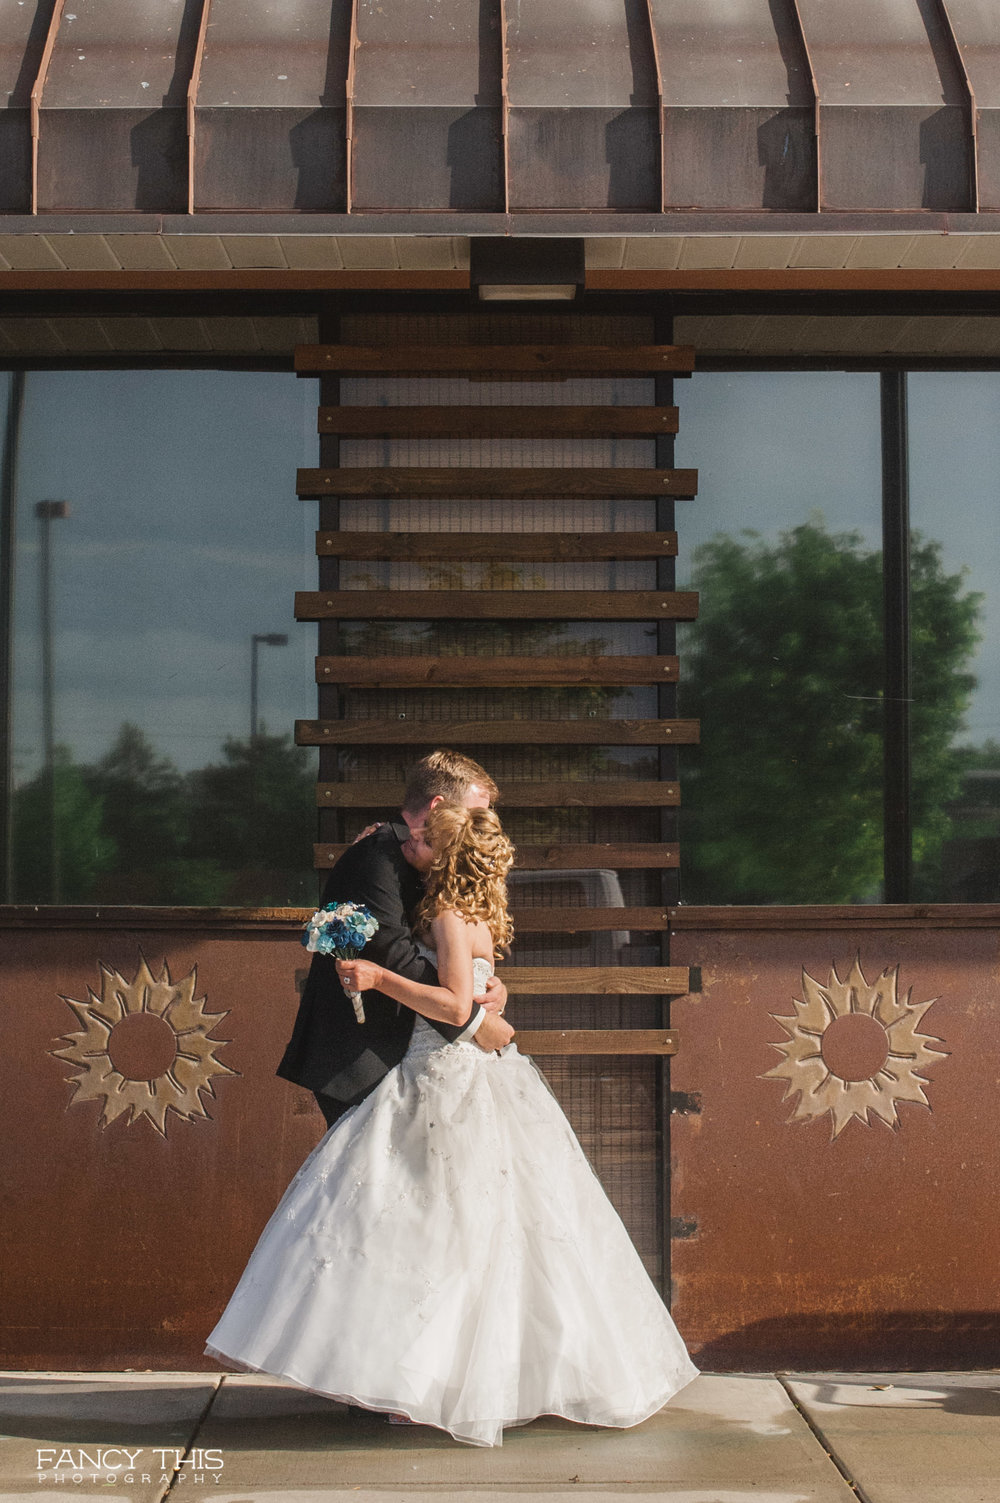 courtneyjasonwedding_socialmediaready193.jpg